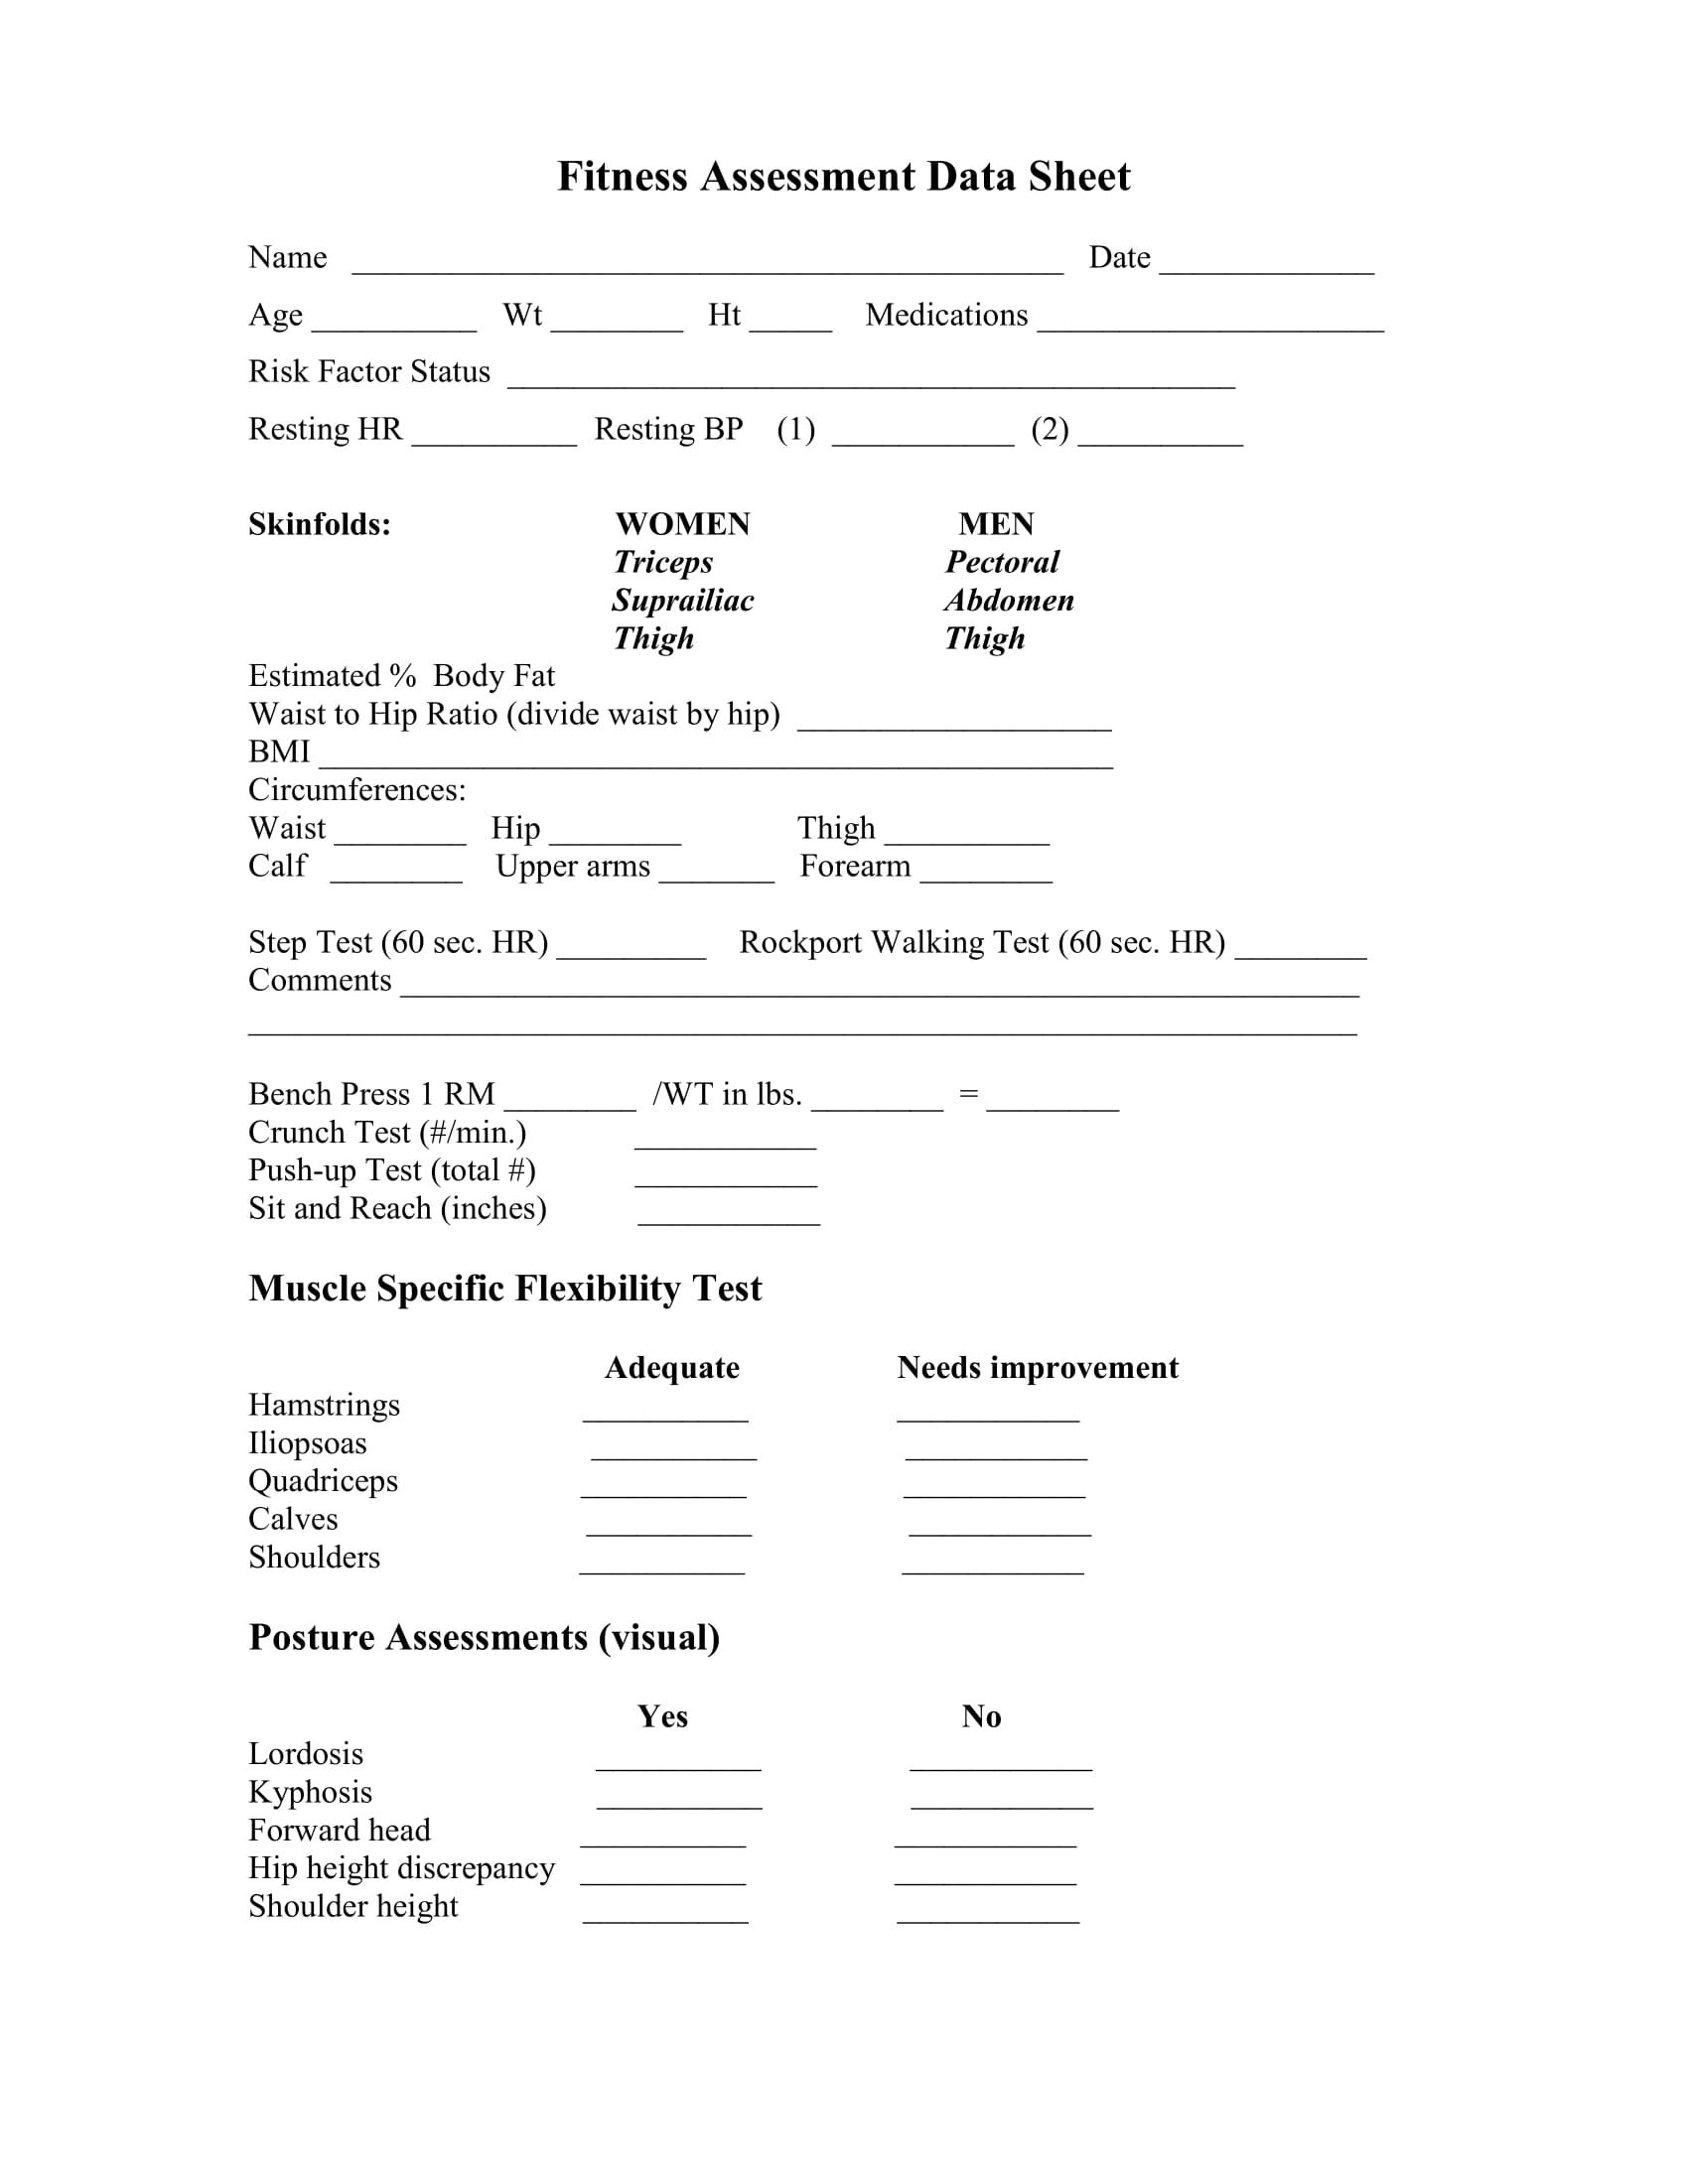 Fitness Assessment Form In 2020 Personal Trainer Exercise Form